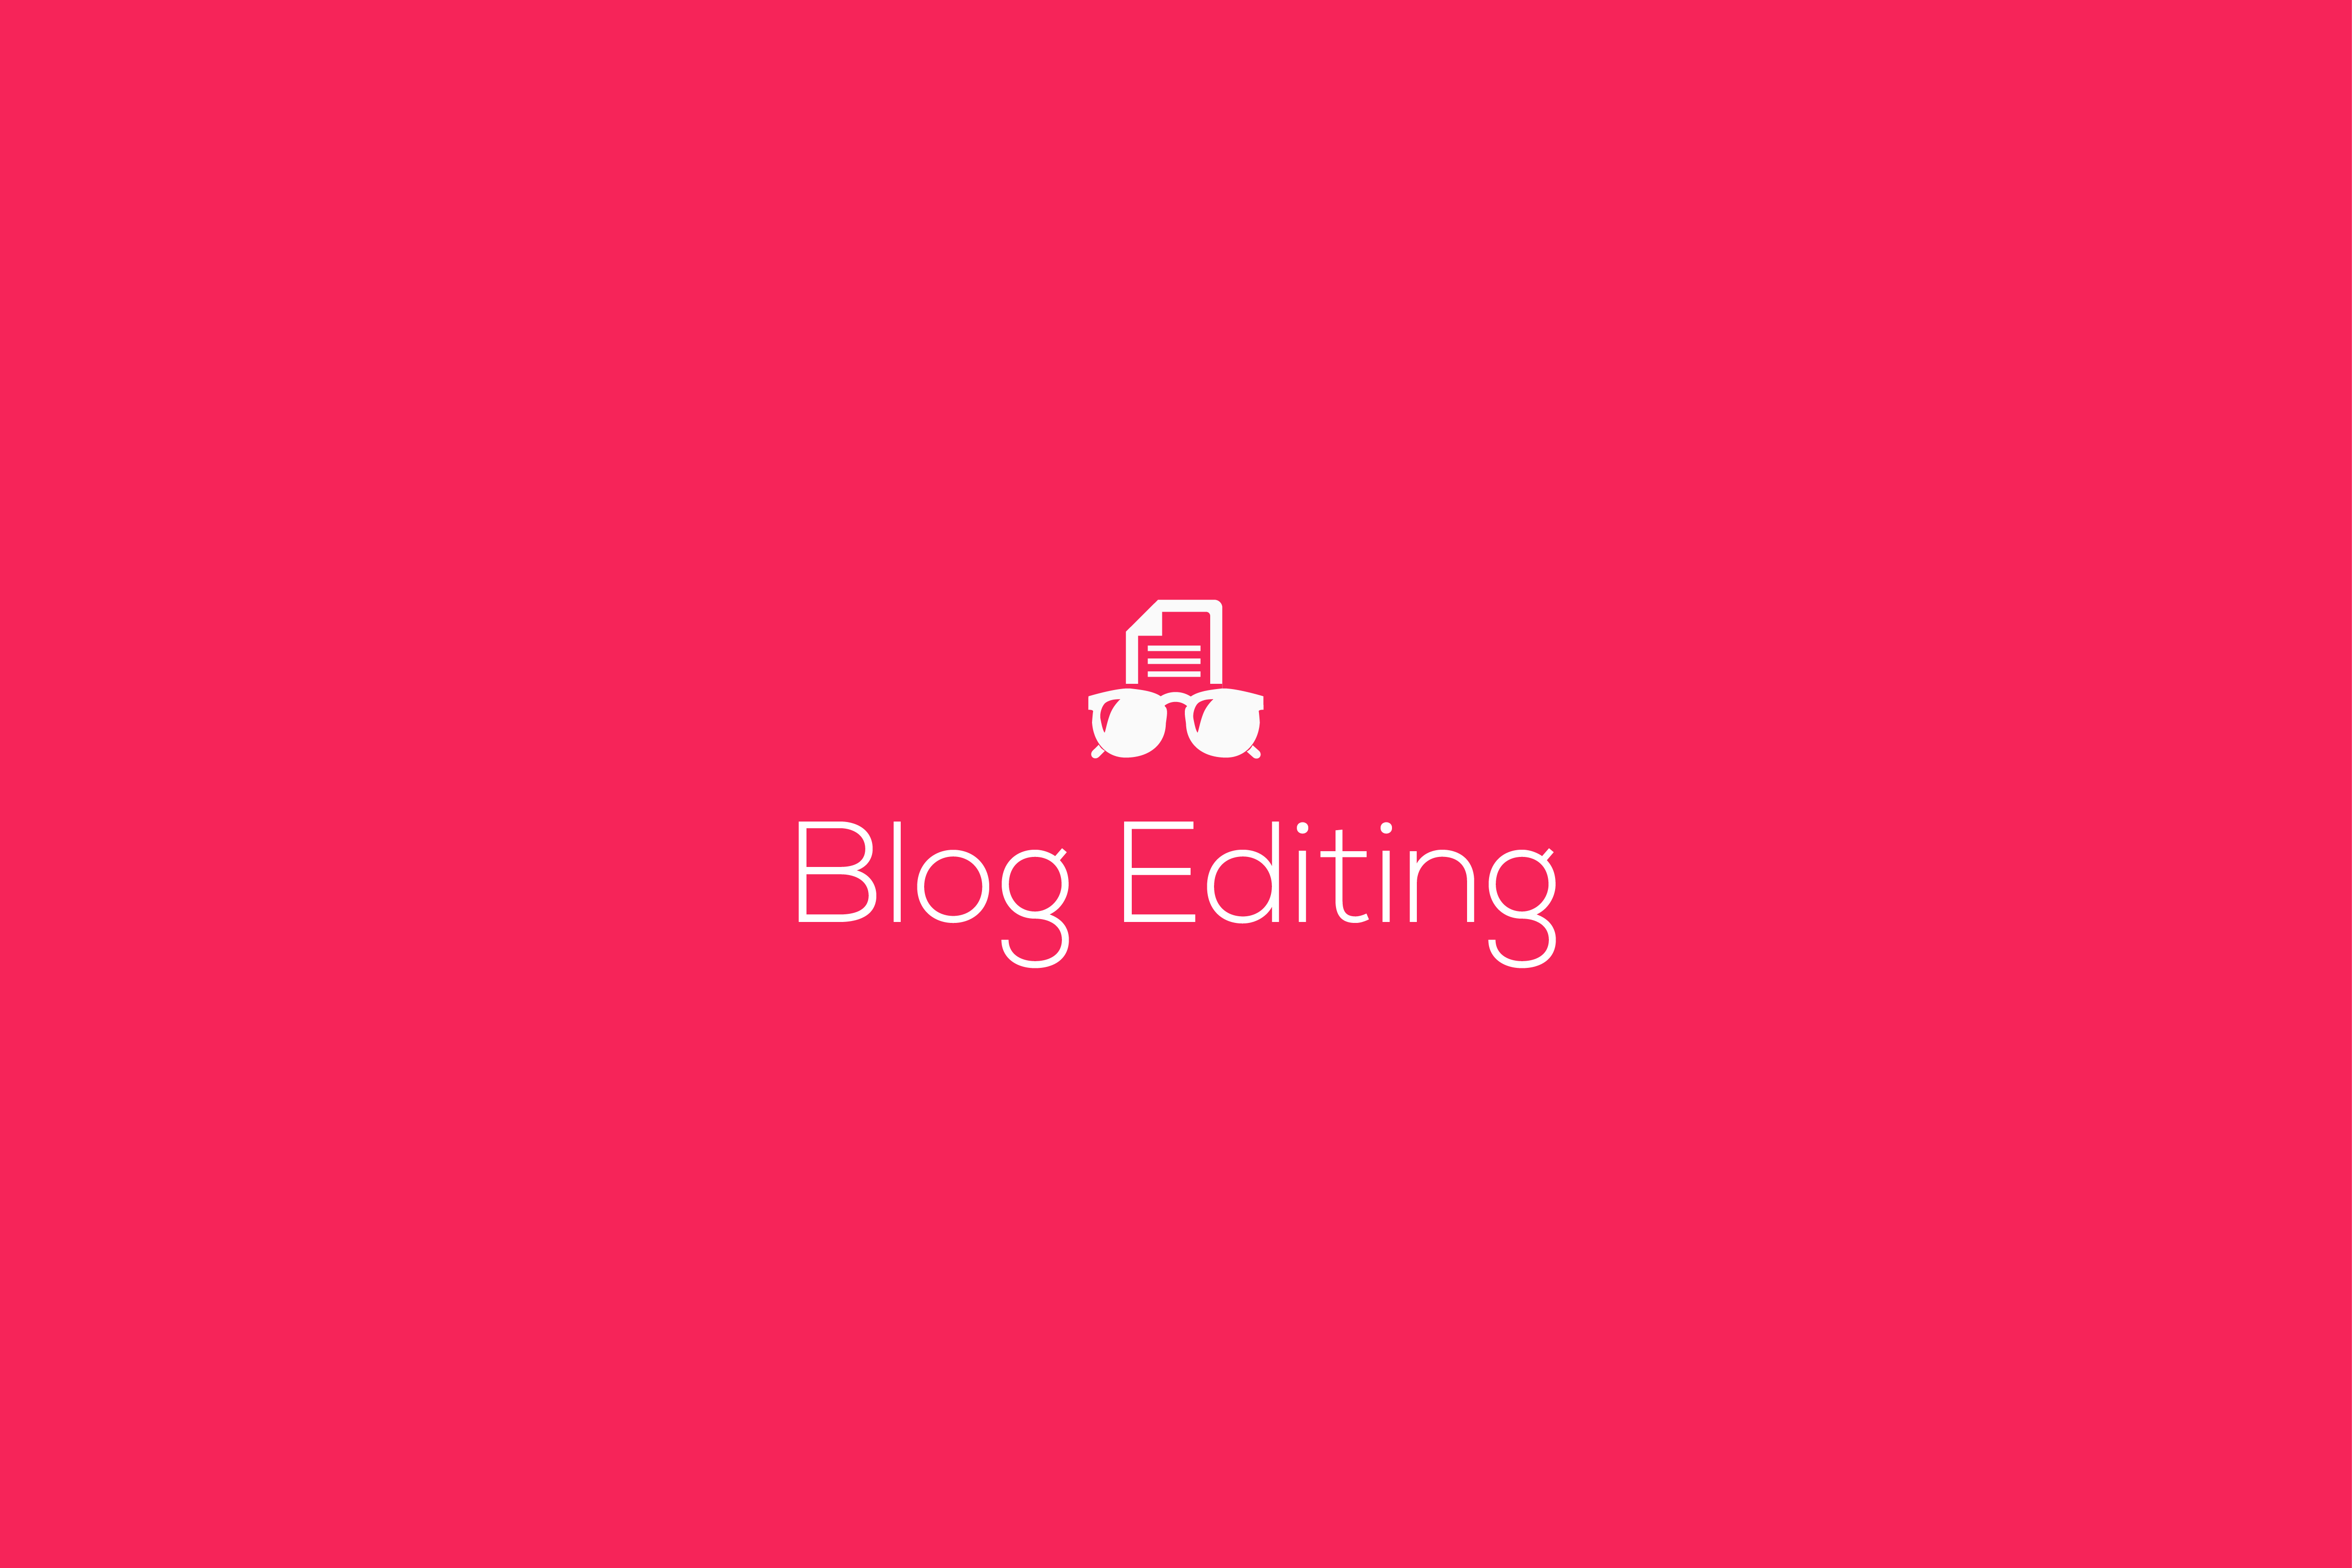 Blog editing service, editing blogs